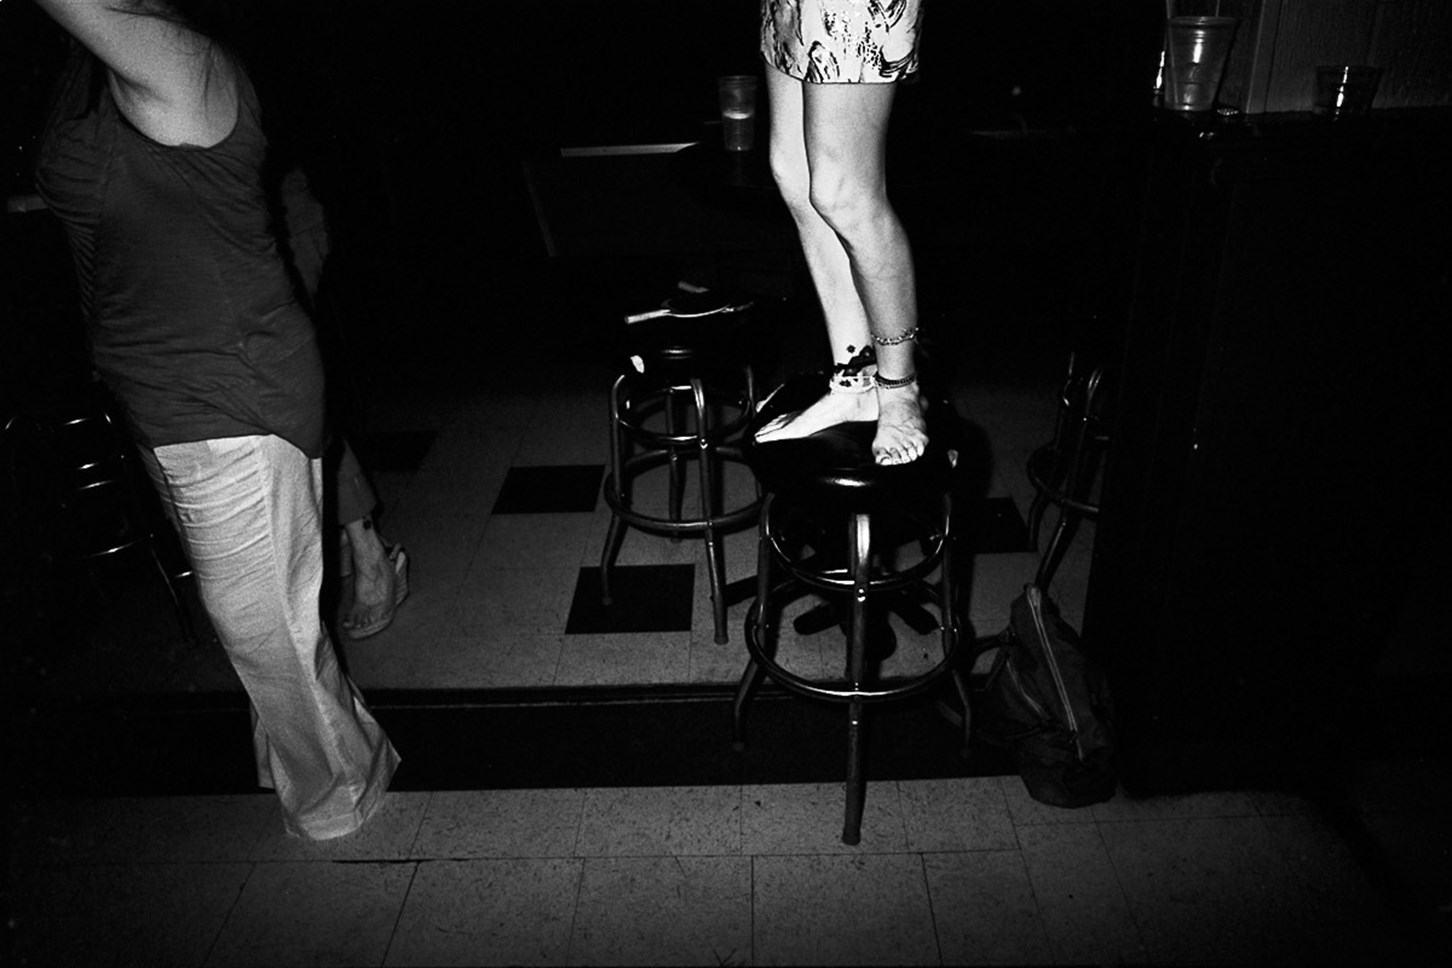 A Woman On A Bar Stool, August 2011